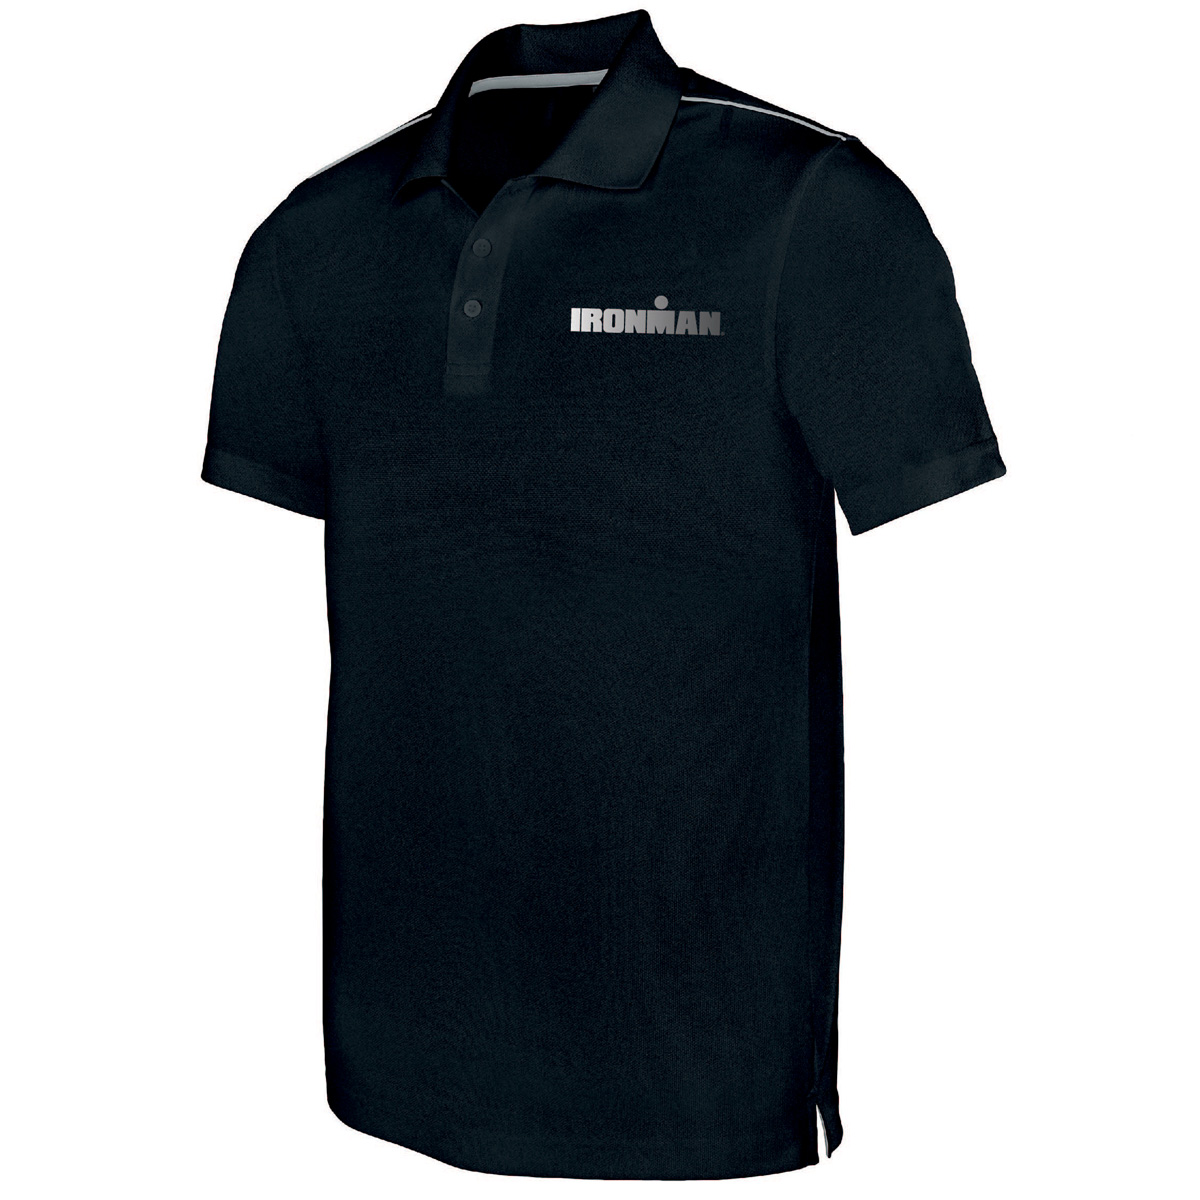 IRONMAN SANTINI MEN'S FINISHER POLO